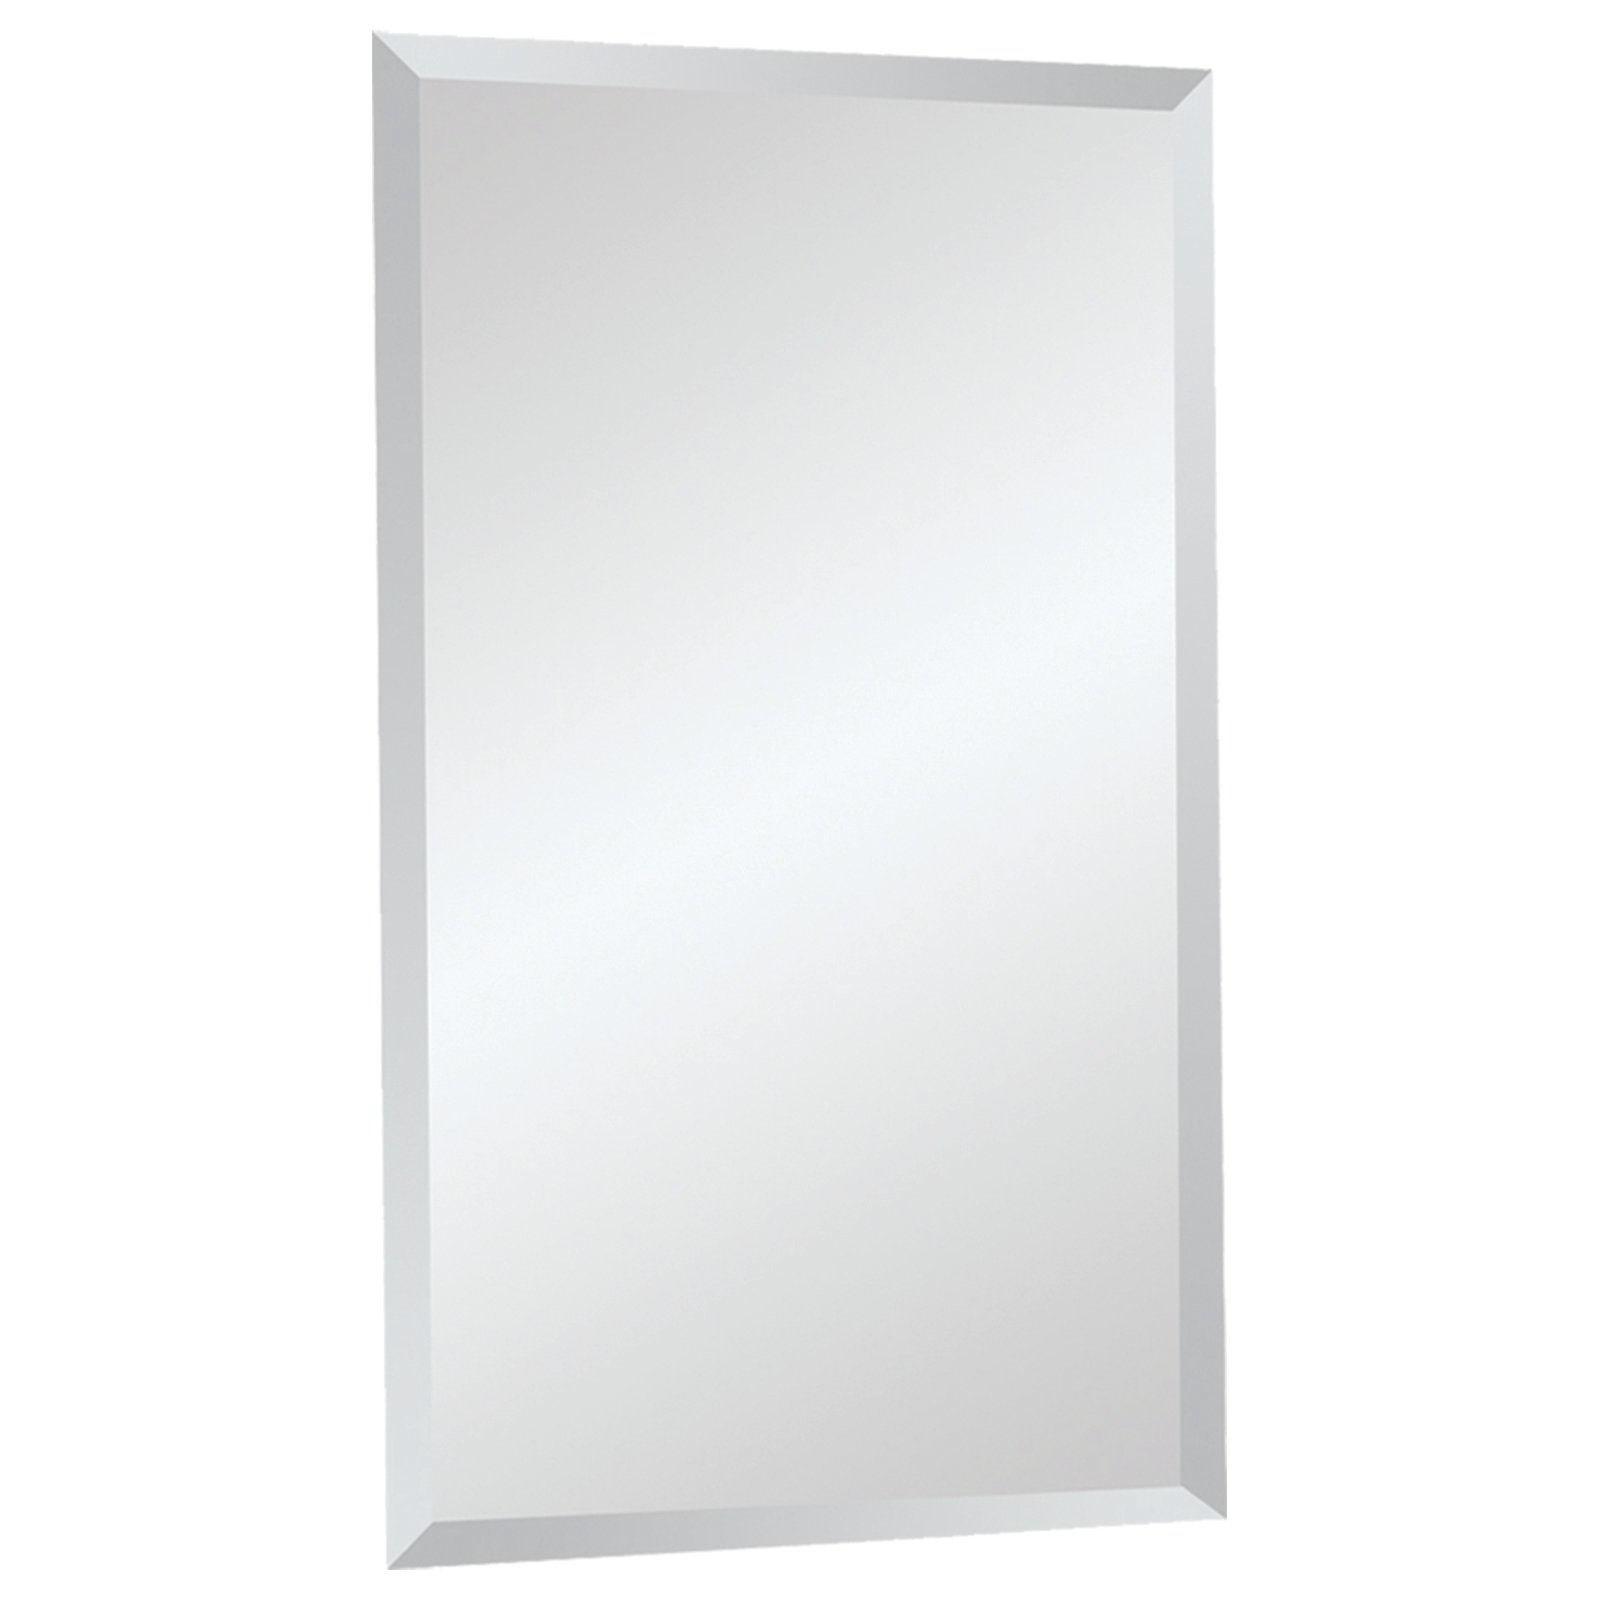 Frameless Mirrors Youll Love Wayfair Pertaining To Wall Mirror Without Frame (Image 3 of 15)